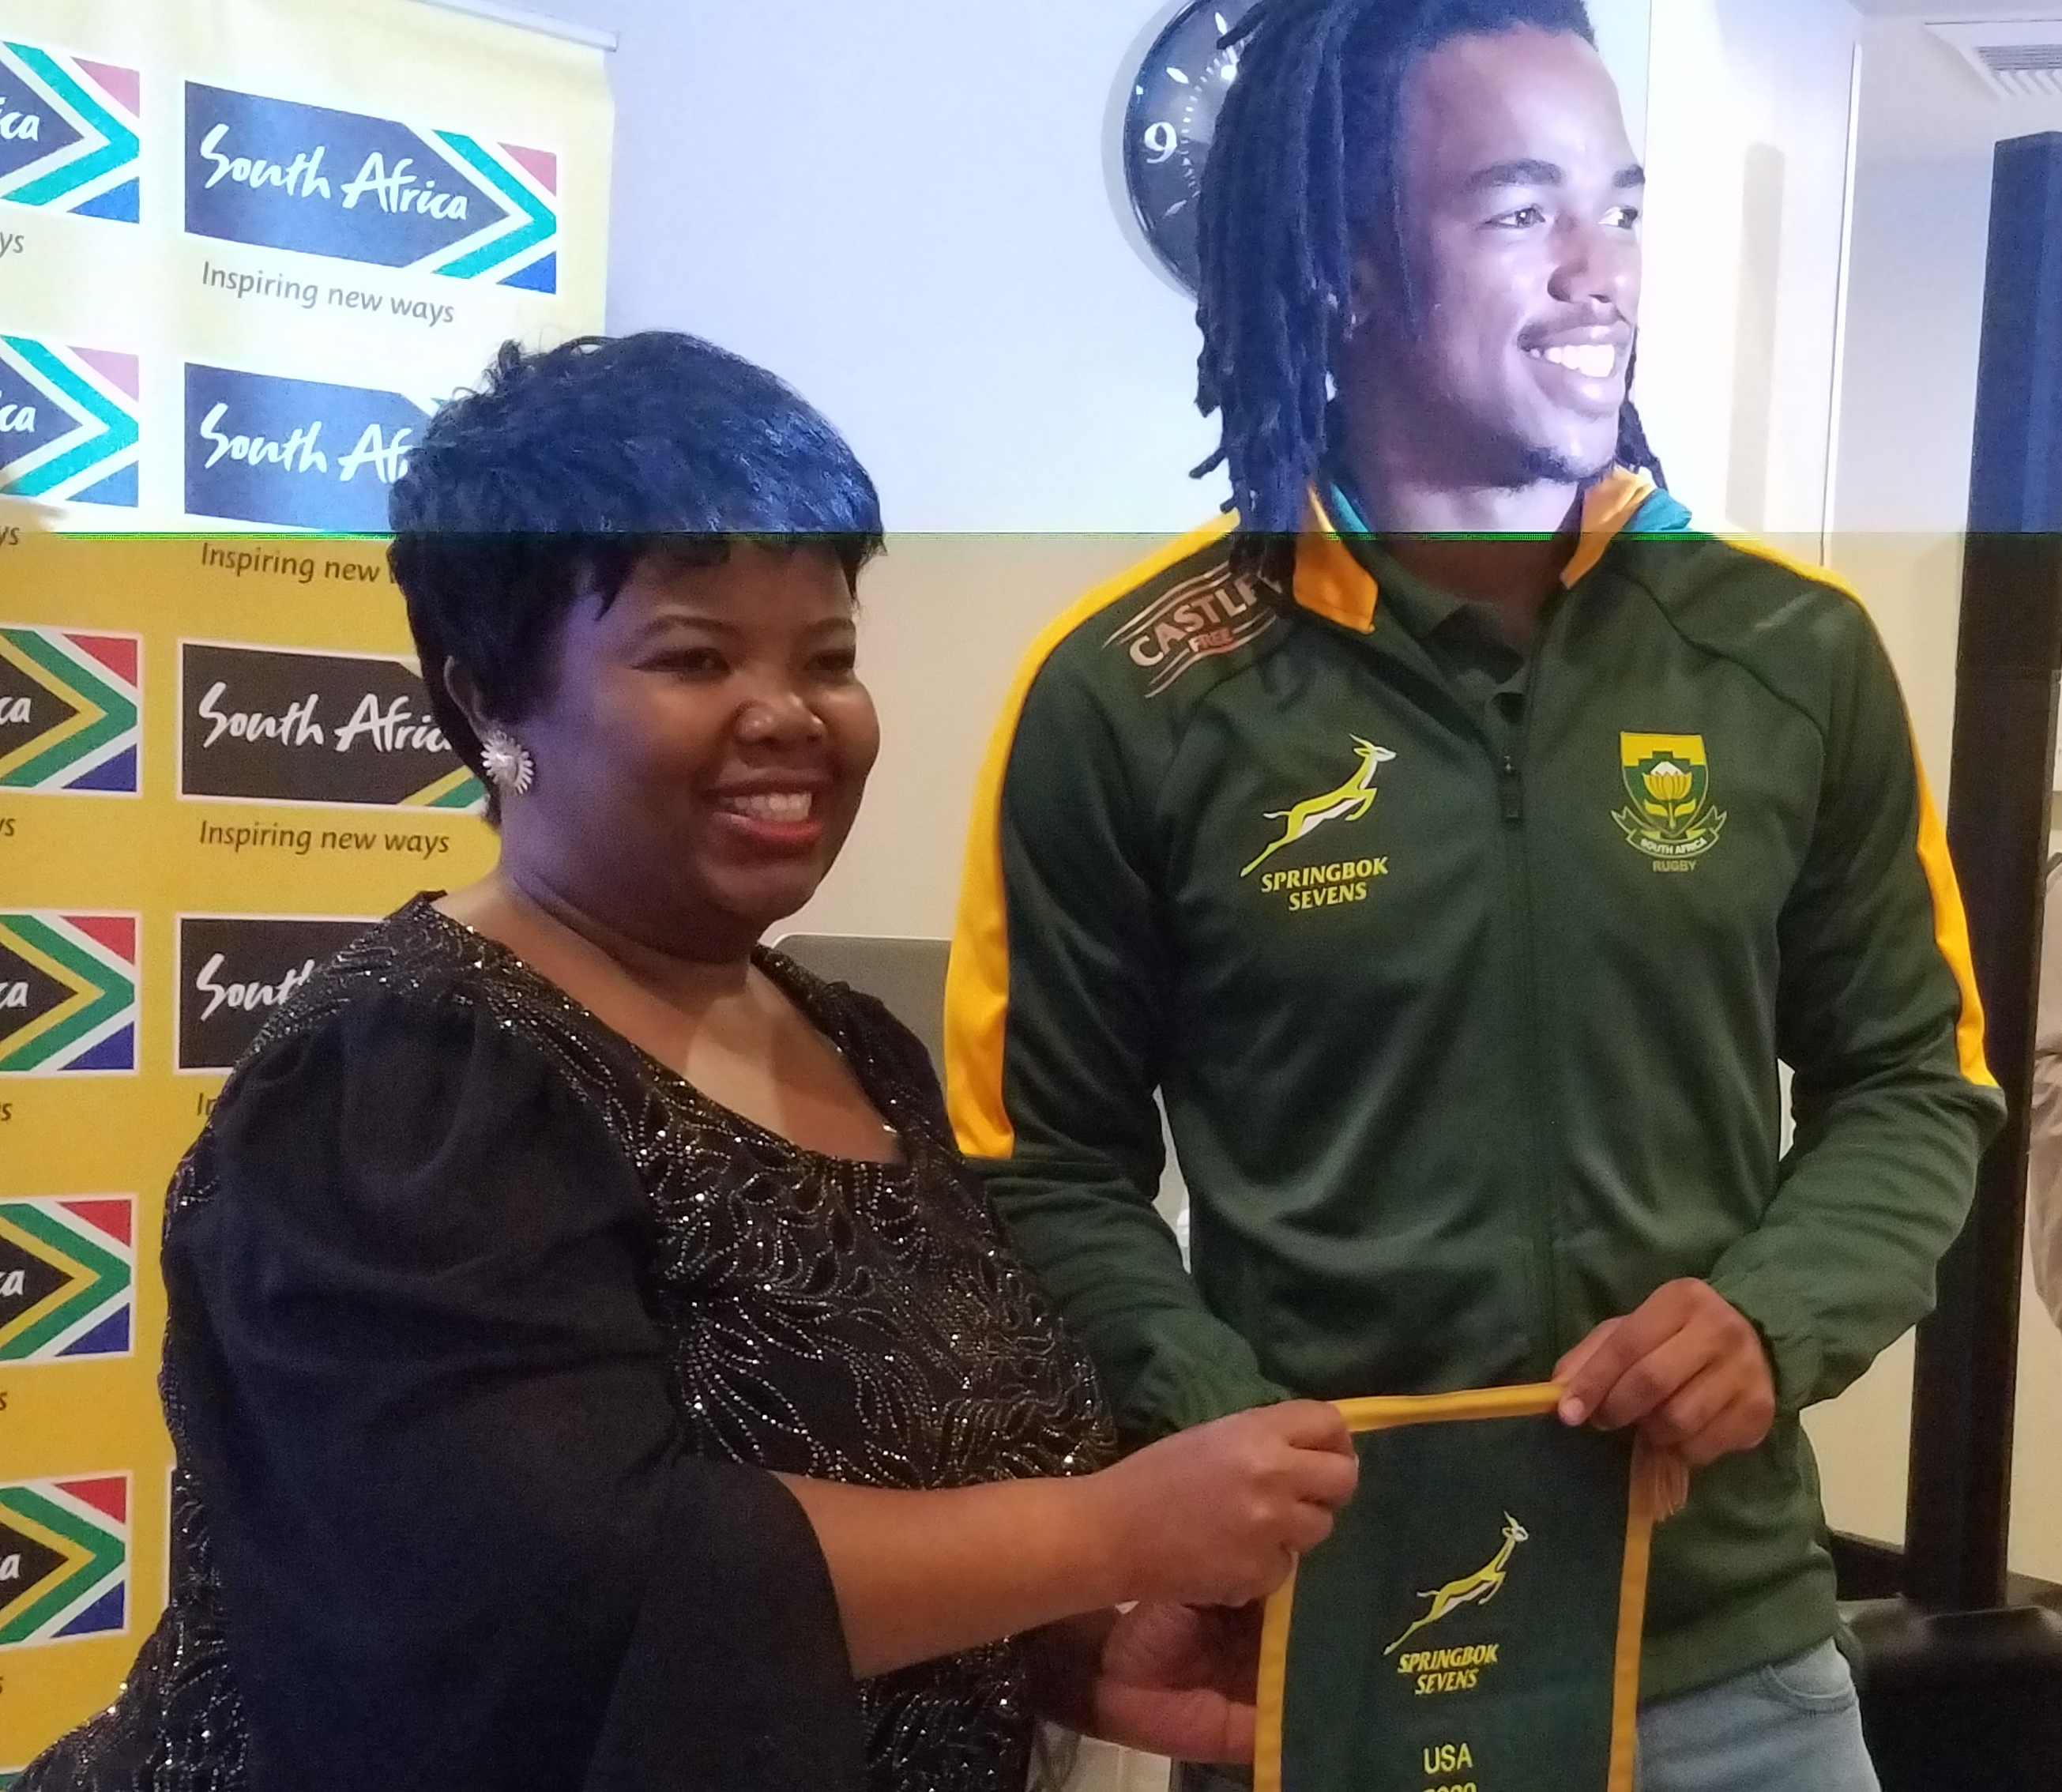 South African Consulate-General LA Receives World Rugby Champions, The Springboks